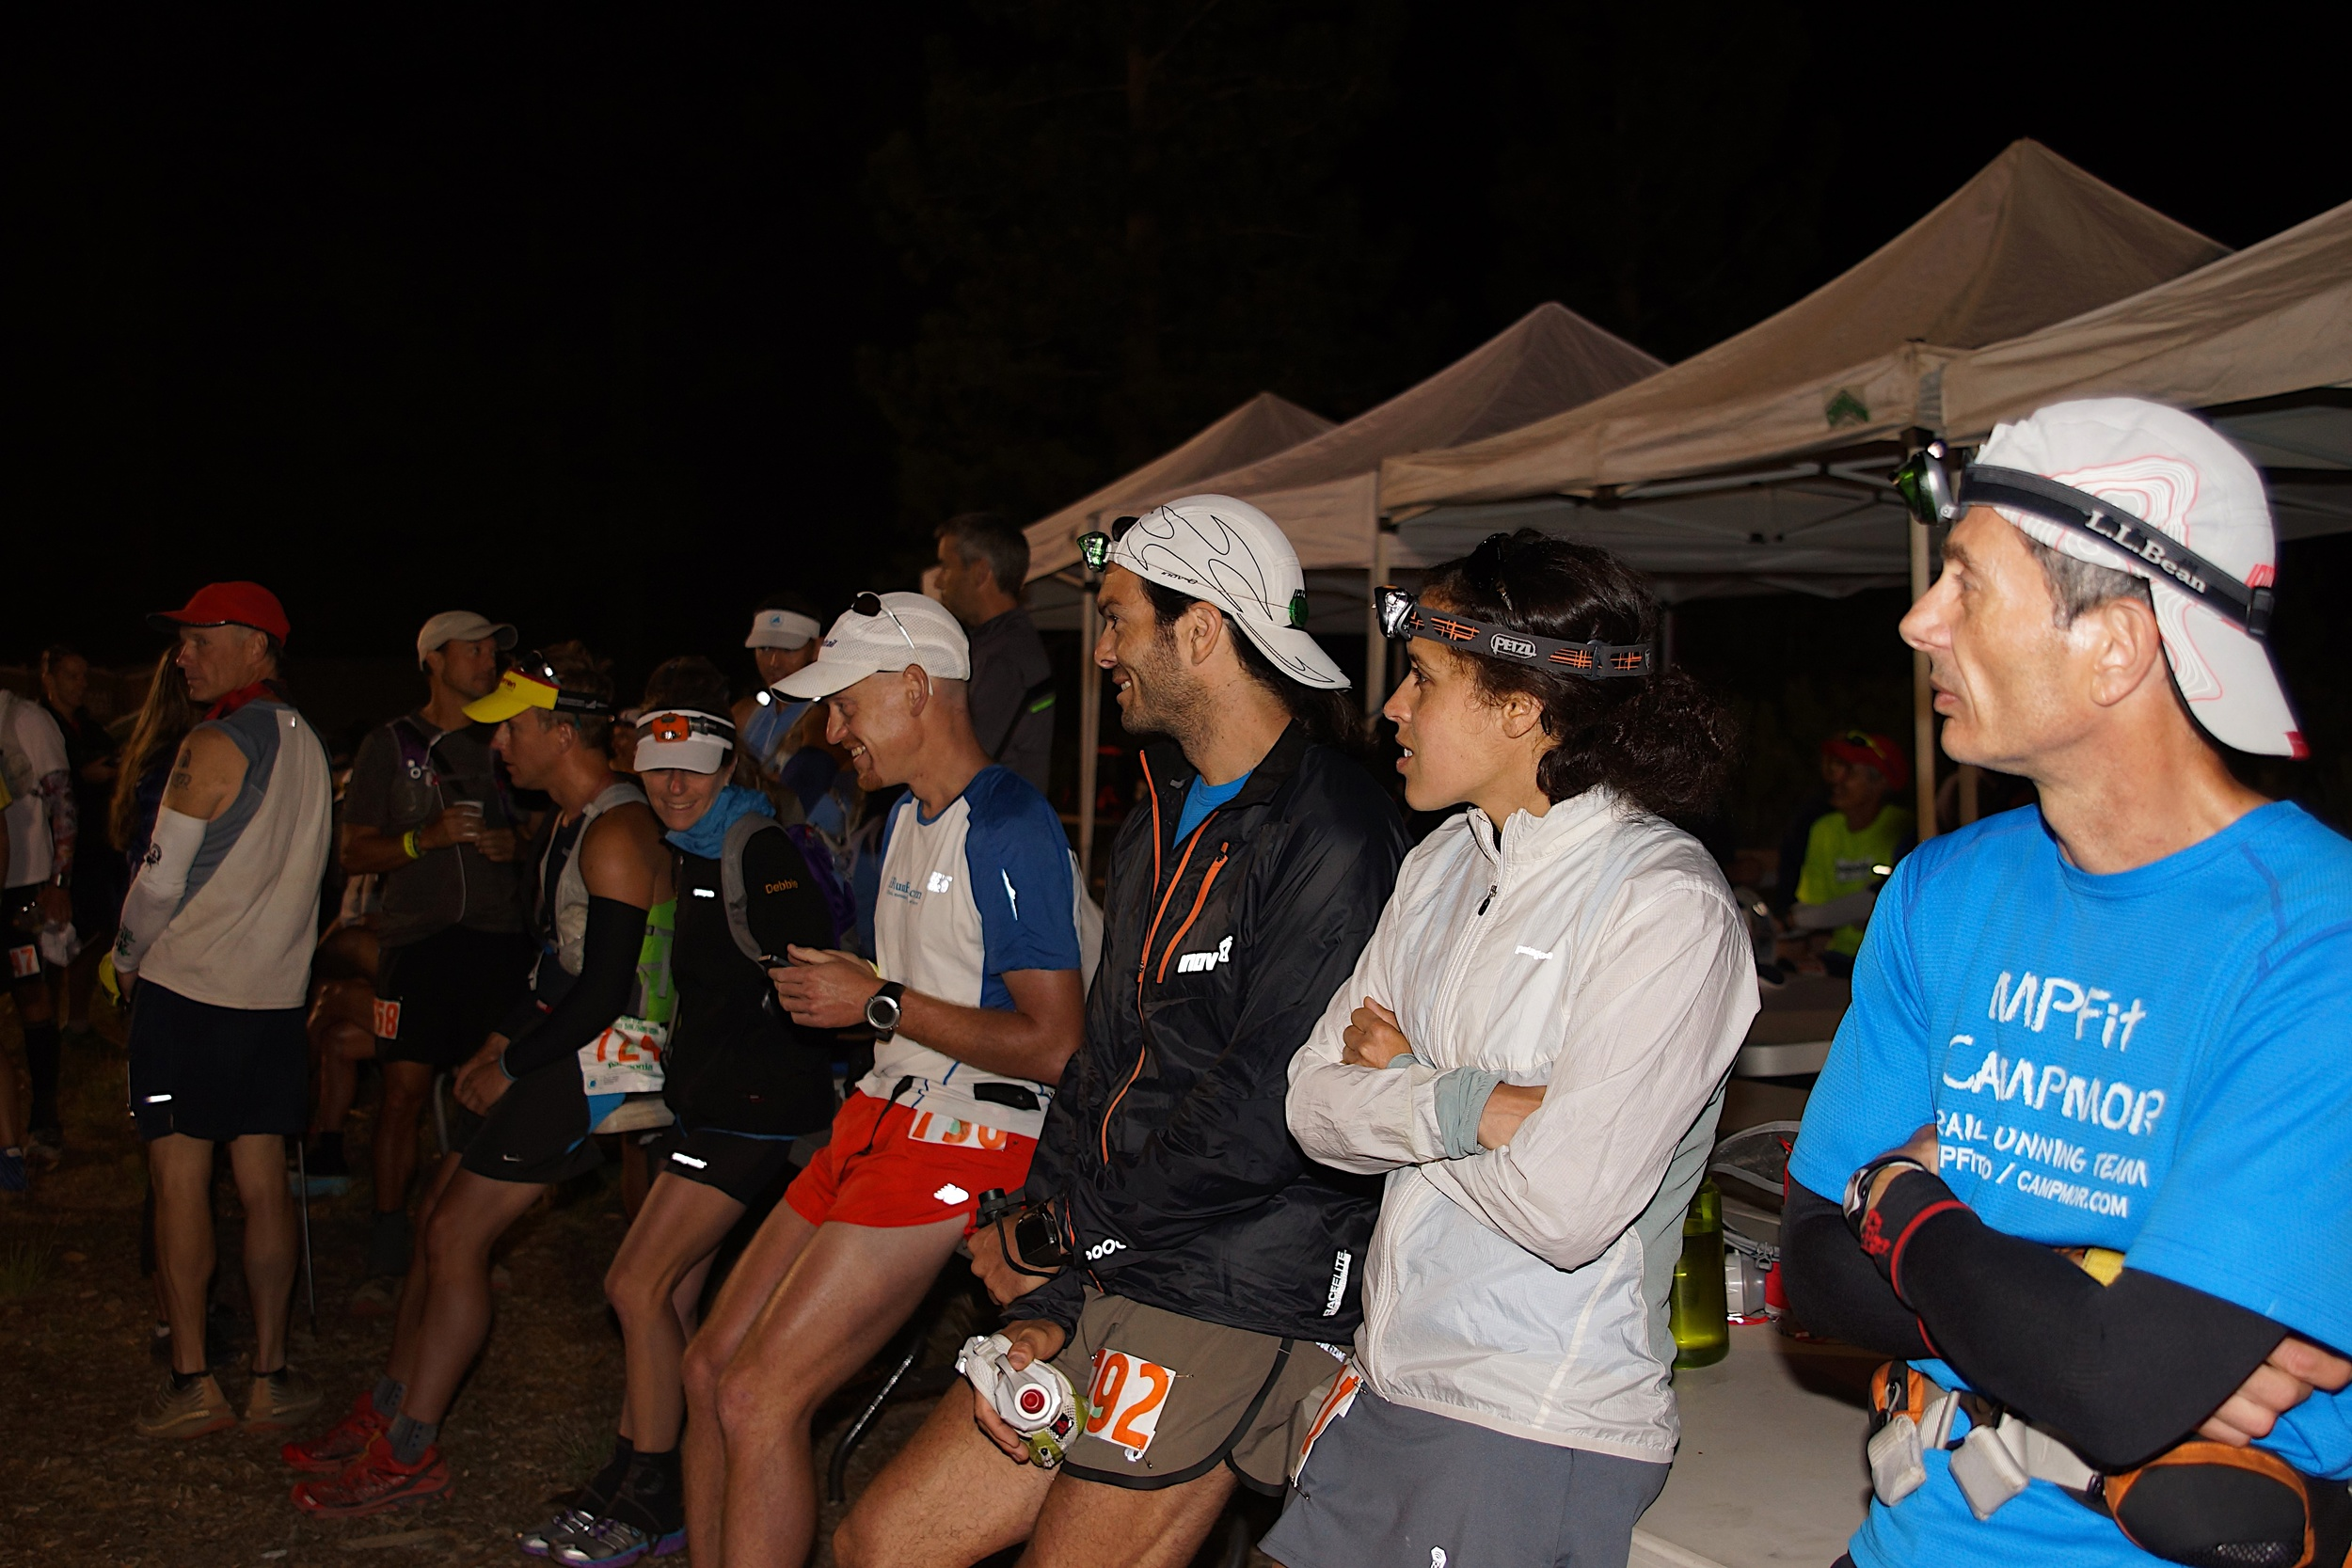 """Awaiting the start, 4:40am. 20 minutes till """"on your mark"""""""